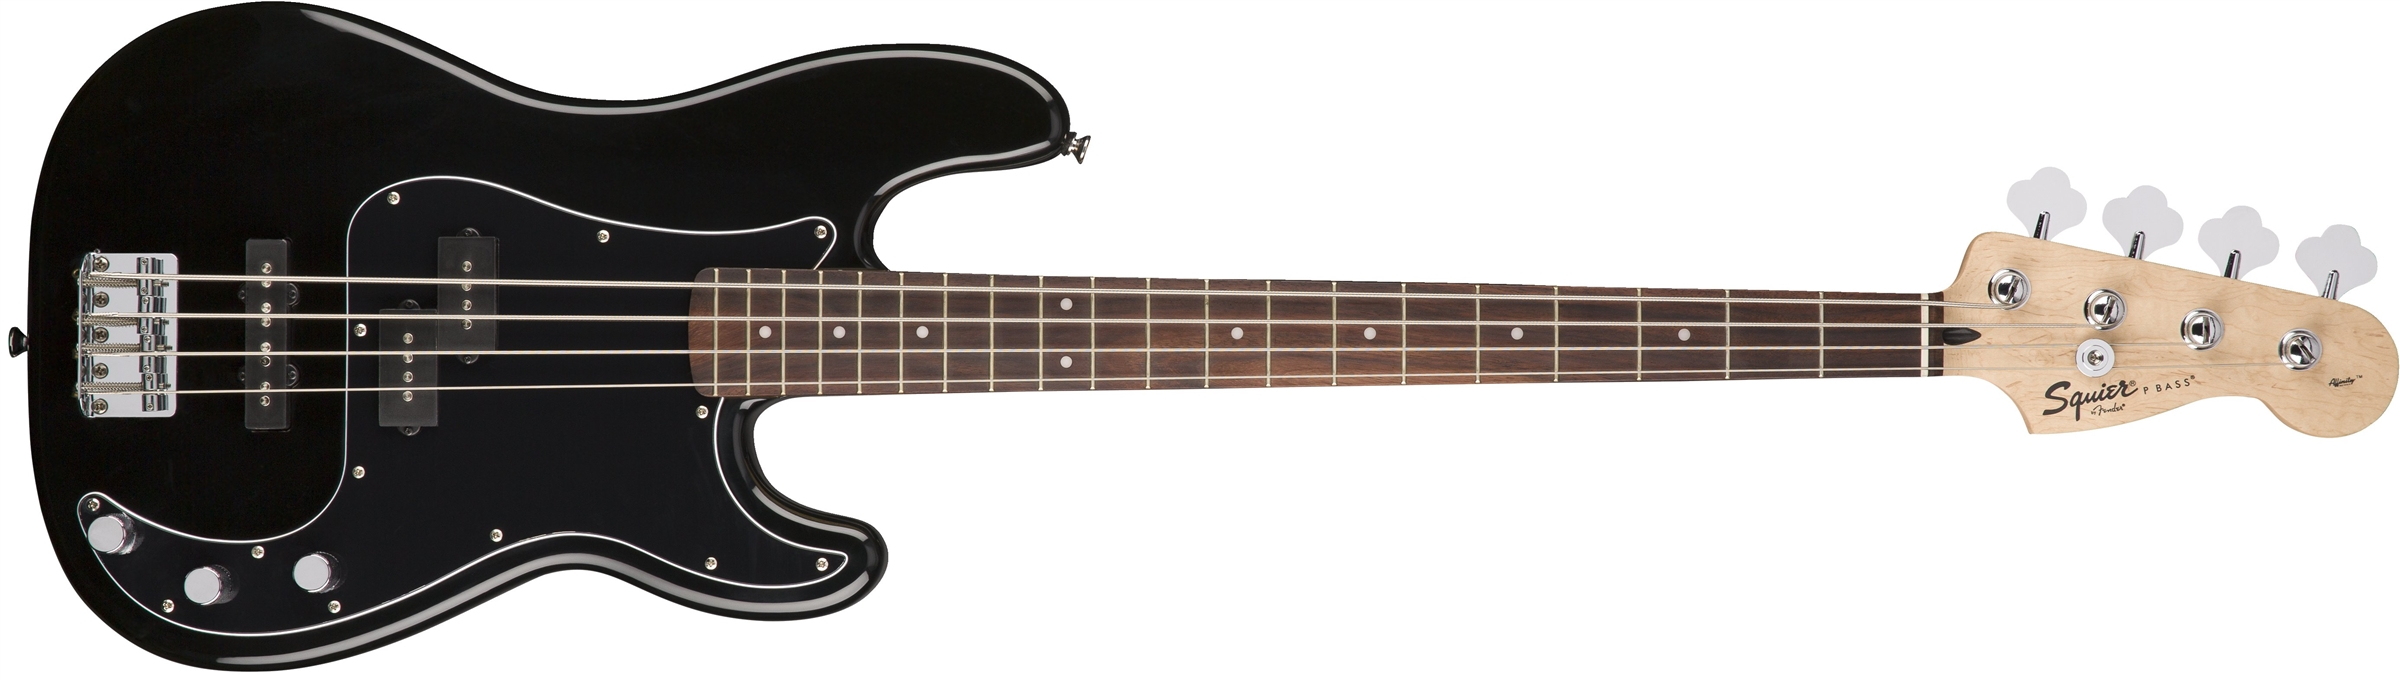 Fender Squier Affinity Series PJ Bass Pack w  Amplifier & Accessories Black by Fender Squier